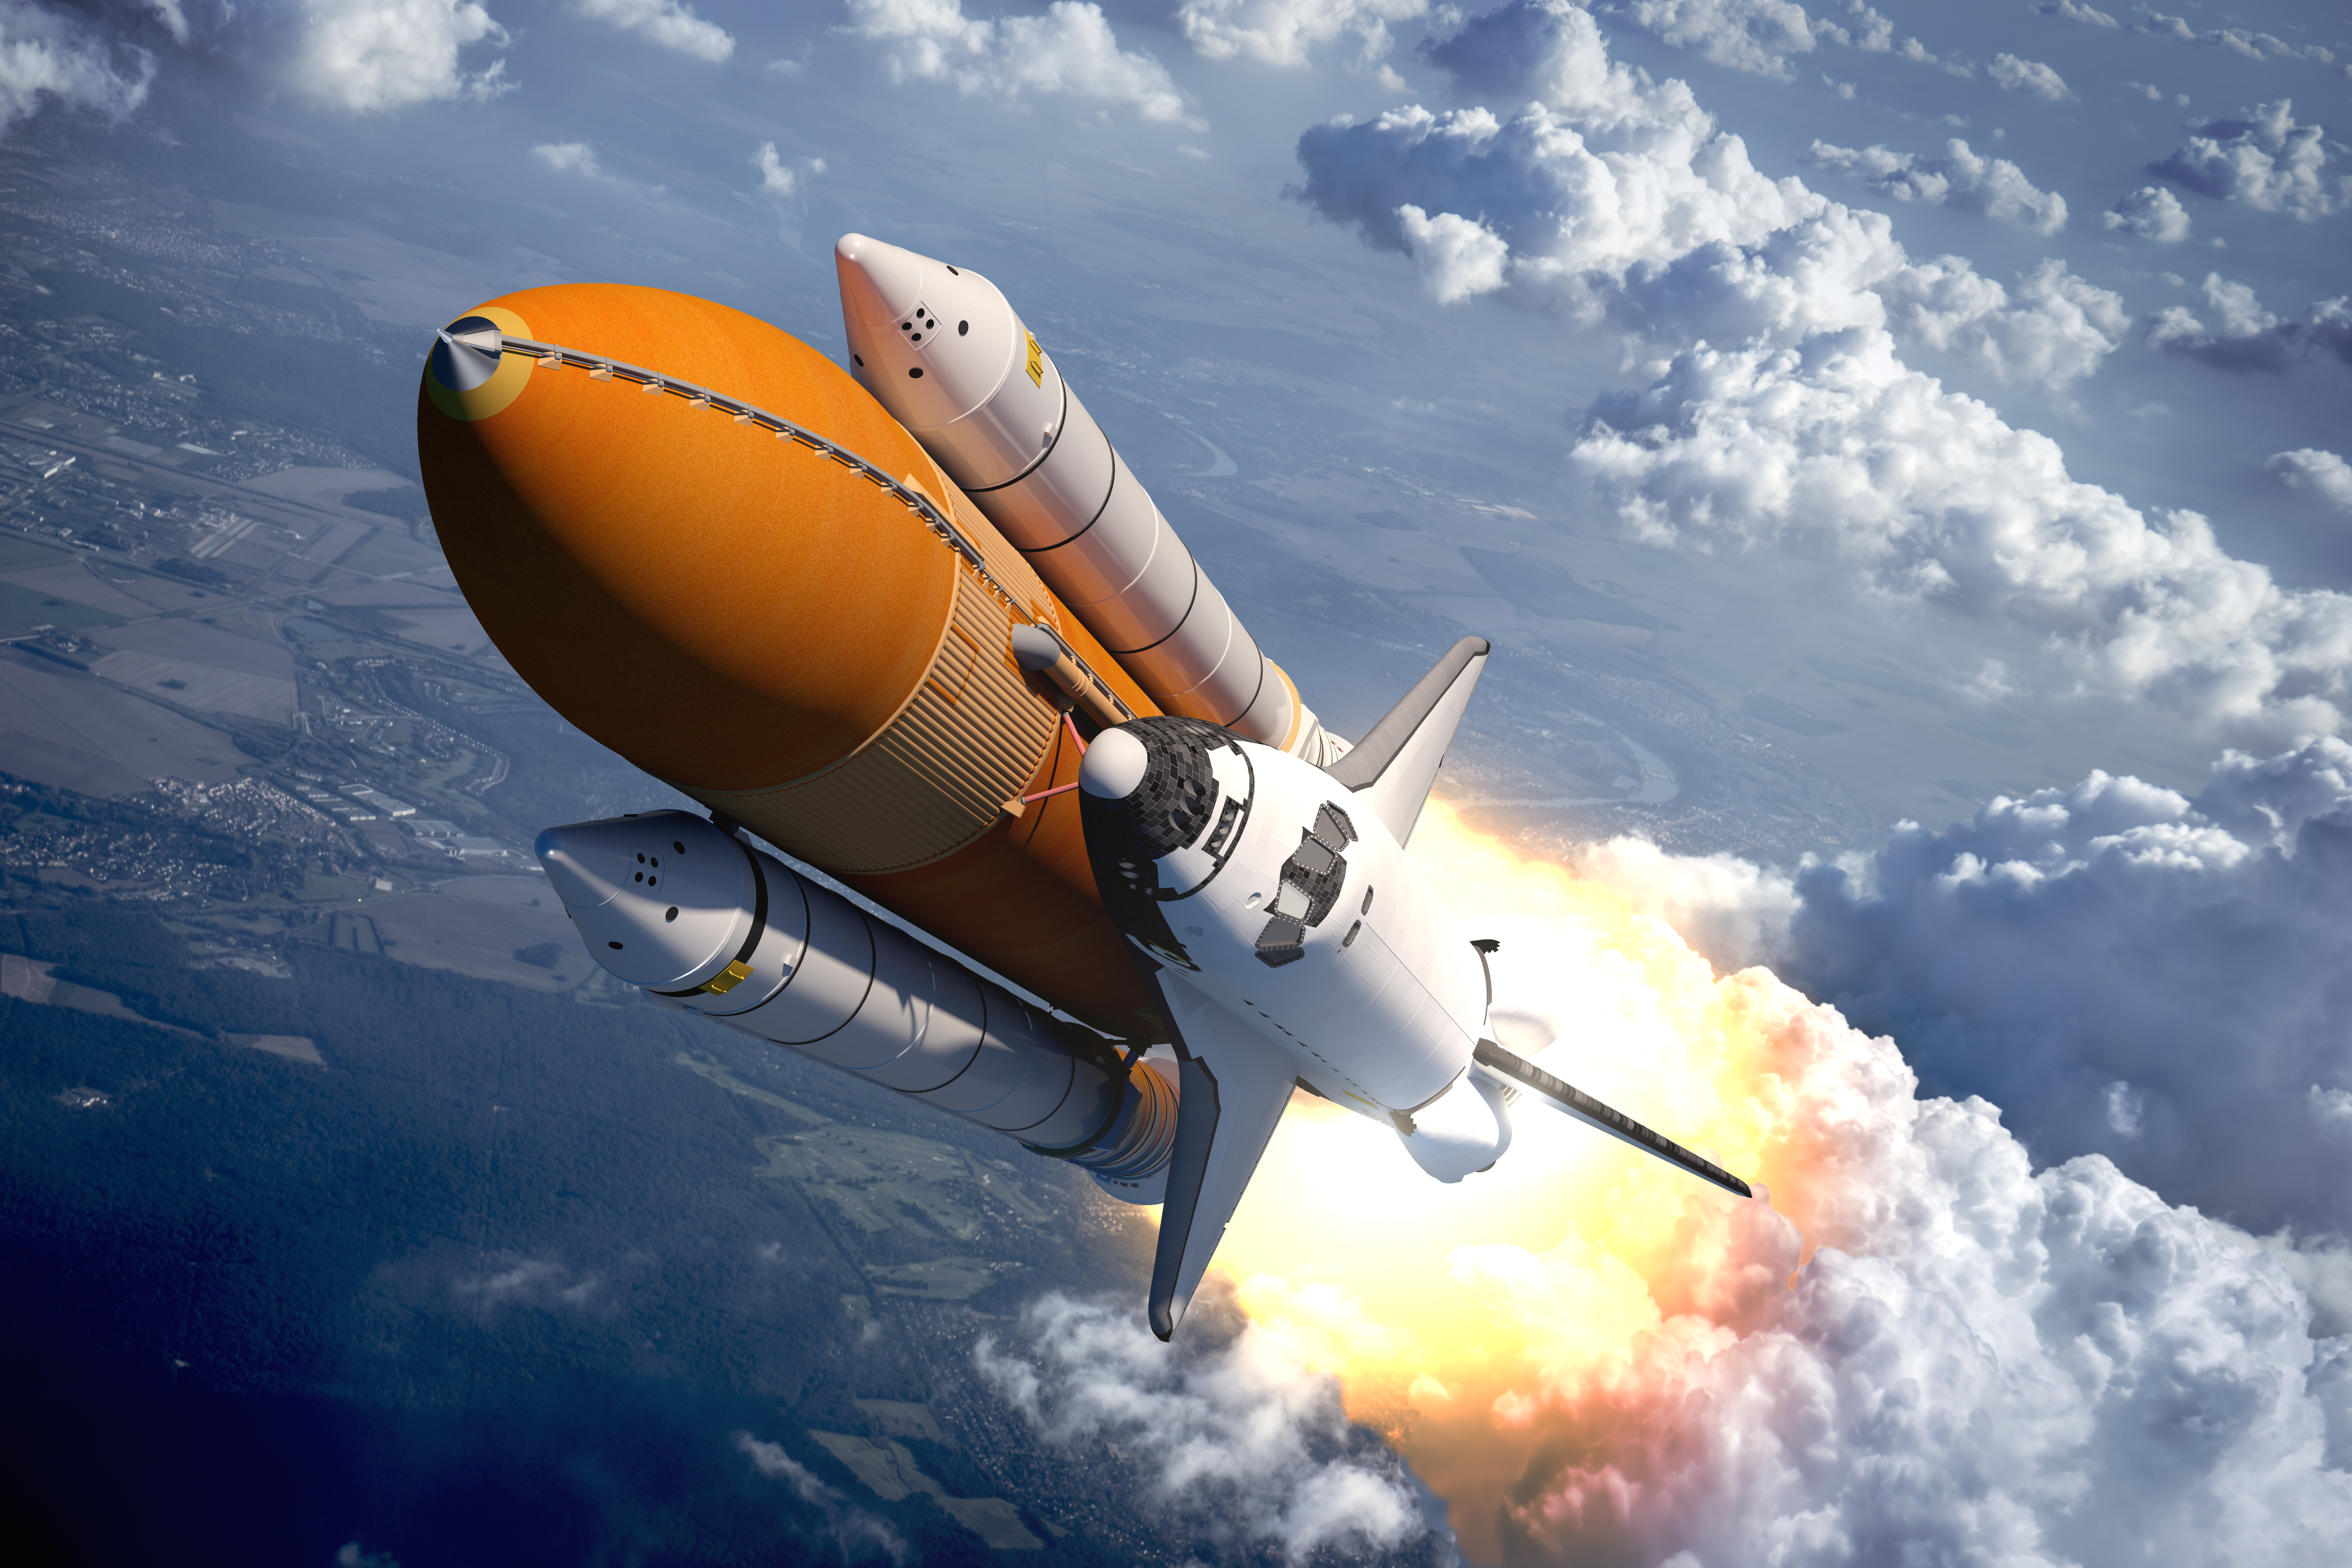 Vehicles Space Shuttle 6000x4000